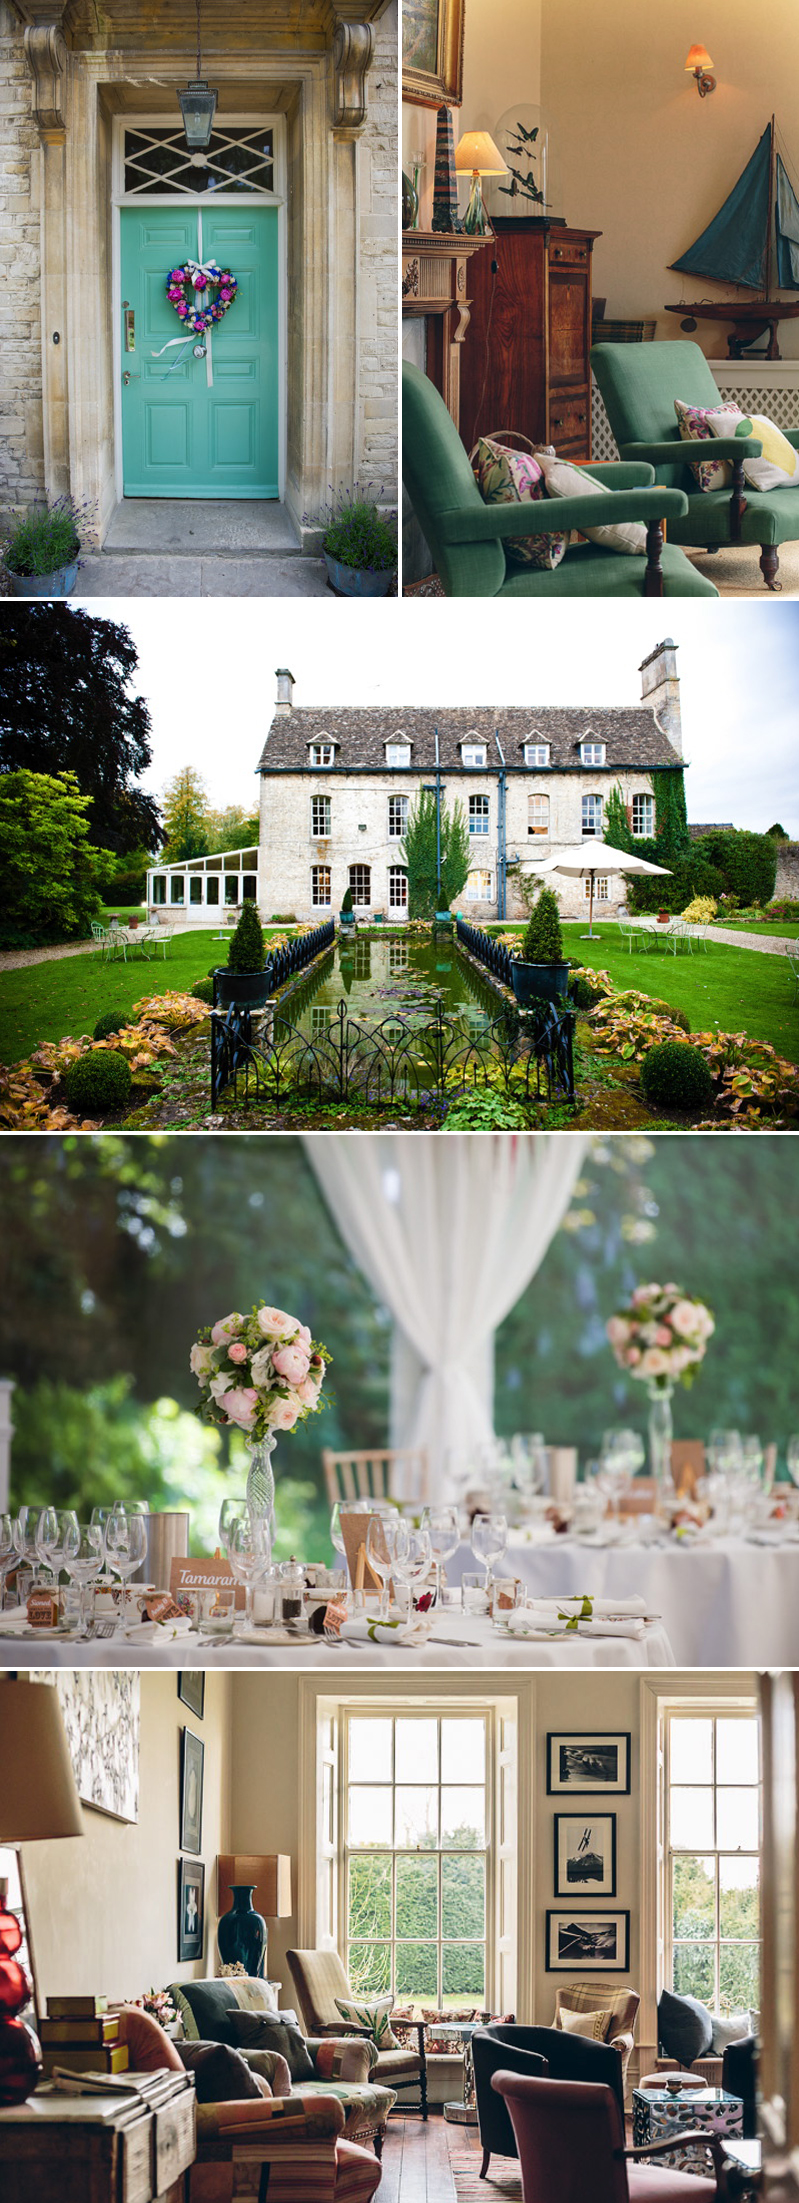 Coco Wedding Venues - Coco Collection - The Rectory, Wiltshire.